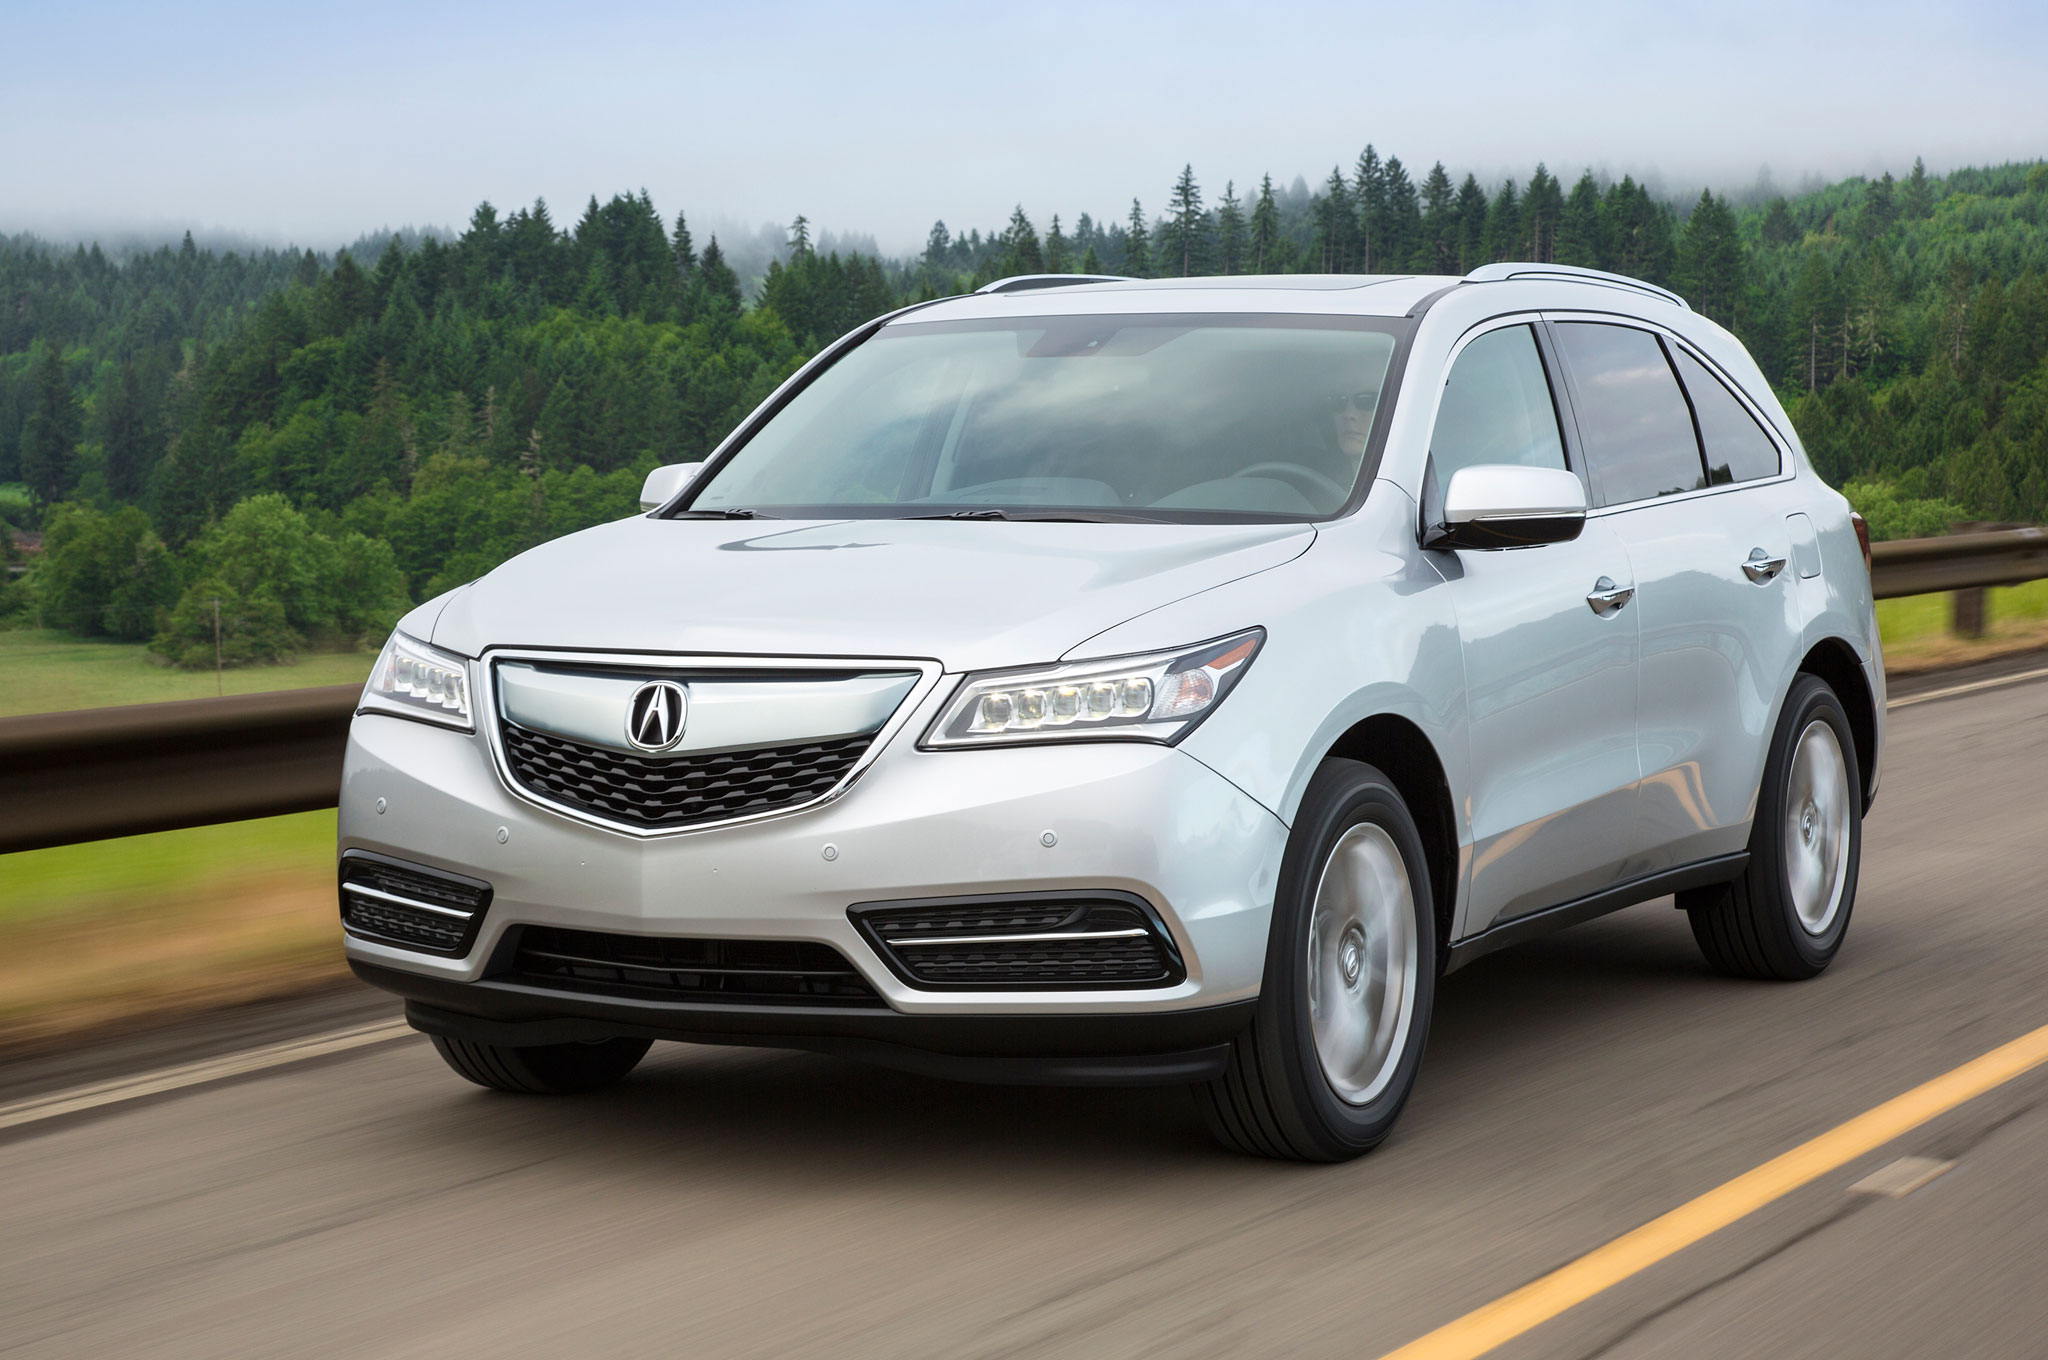 2016 acura mdx updated with nine speed automatic new tech features. Black Bedroom Furniture Sets. Home Design Ideas